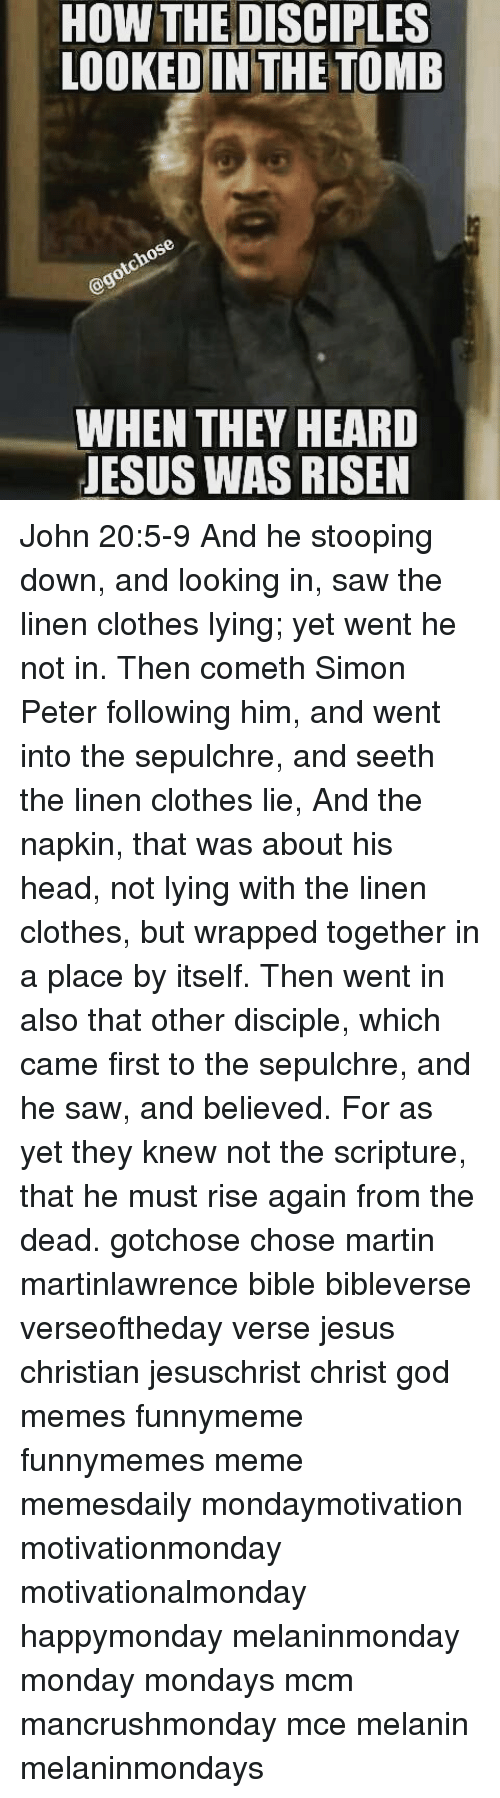 Clothes, God, and Head: HOW THE DISCIPLES  LOOKED IN THE TOMB  WHEN THEY HEARD  JESUS WAS RISEN John 20:5-9 And he stooping down, and looking in, saw the linen clothes lying; yet went he not in. Then cometh Simon Peter following him, and went into the sepulchre, and seeth the linen clothes lie, And the napkin, that was about his head, not lying with the linen clothes, but wrapped together in a place by itself. Then went in also that other disciple, which came first to the sepulchre, and he saw, and believed. For as yet they knew not the scripture, that he must rise again from the dead. gotchose chose martin martinlawrence bible bibleverse verseoftheday verse jesus christian jesuschrist christ god memes funnymeme funnymemes meme memesdaily mondaymotivation motivationmonday motivationalmonday happymonday melaninmonday monday mondays mcm mancrushmonday mce melanin melaninmondays